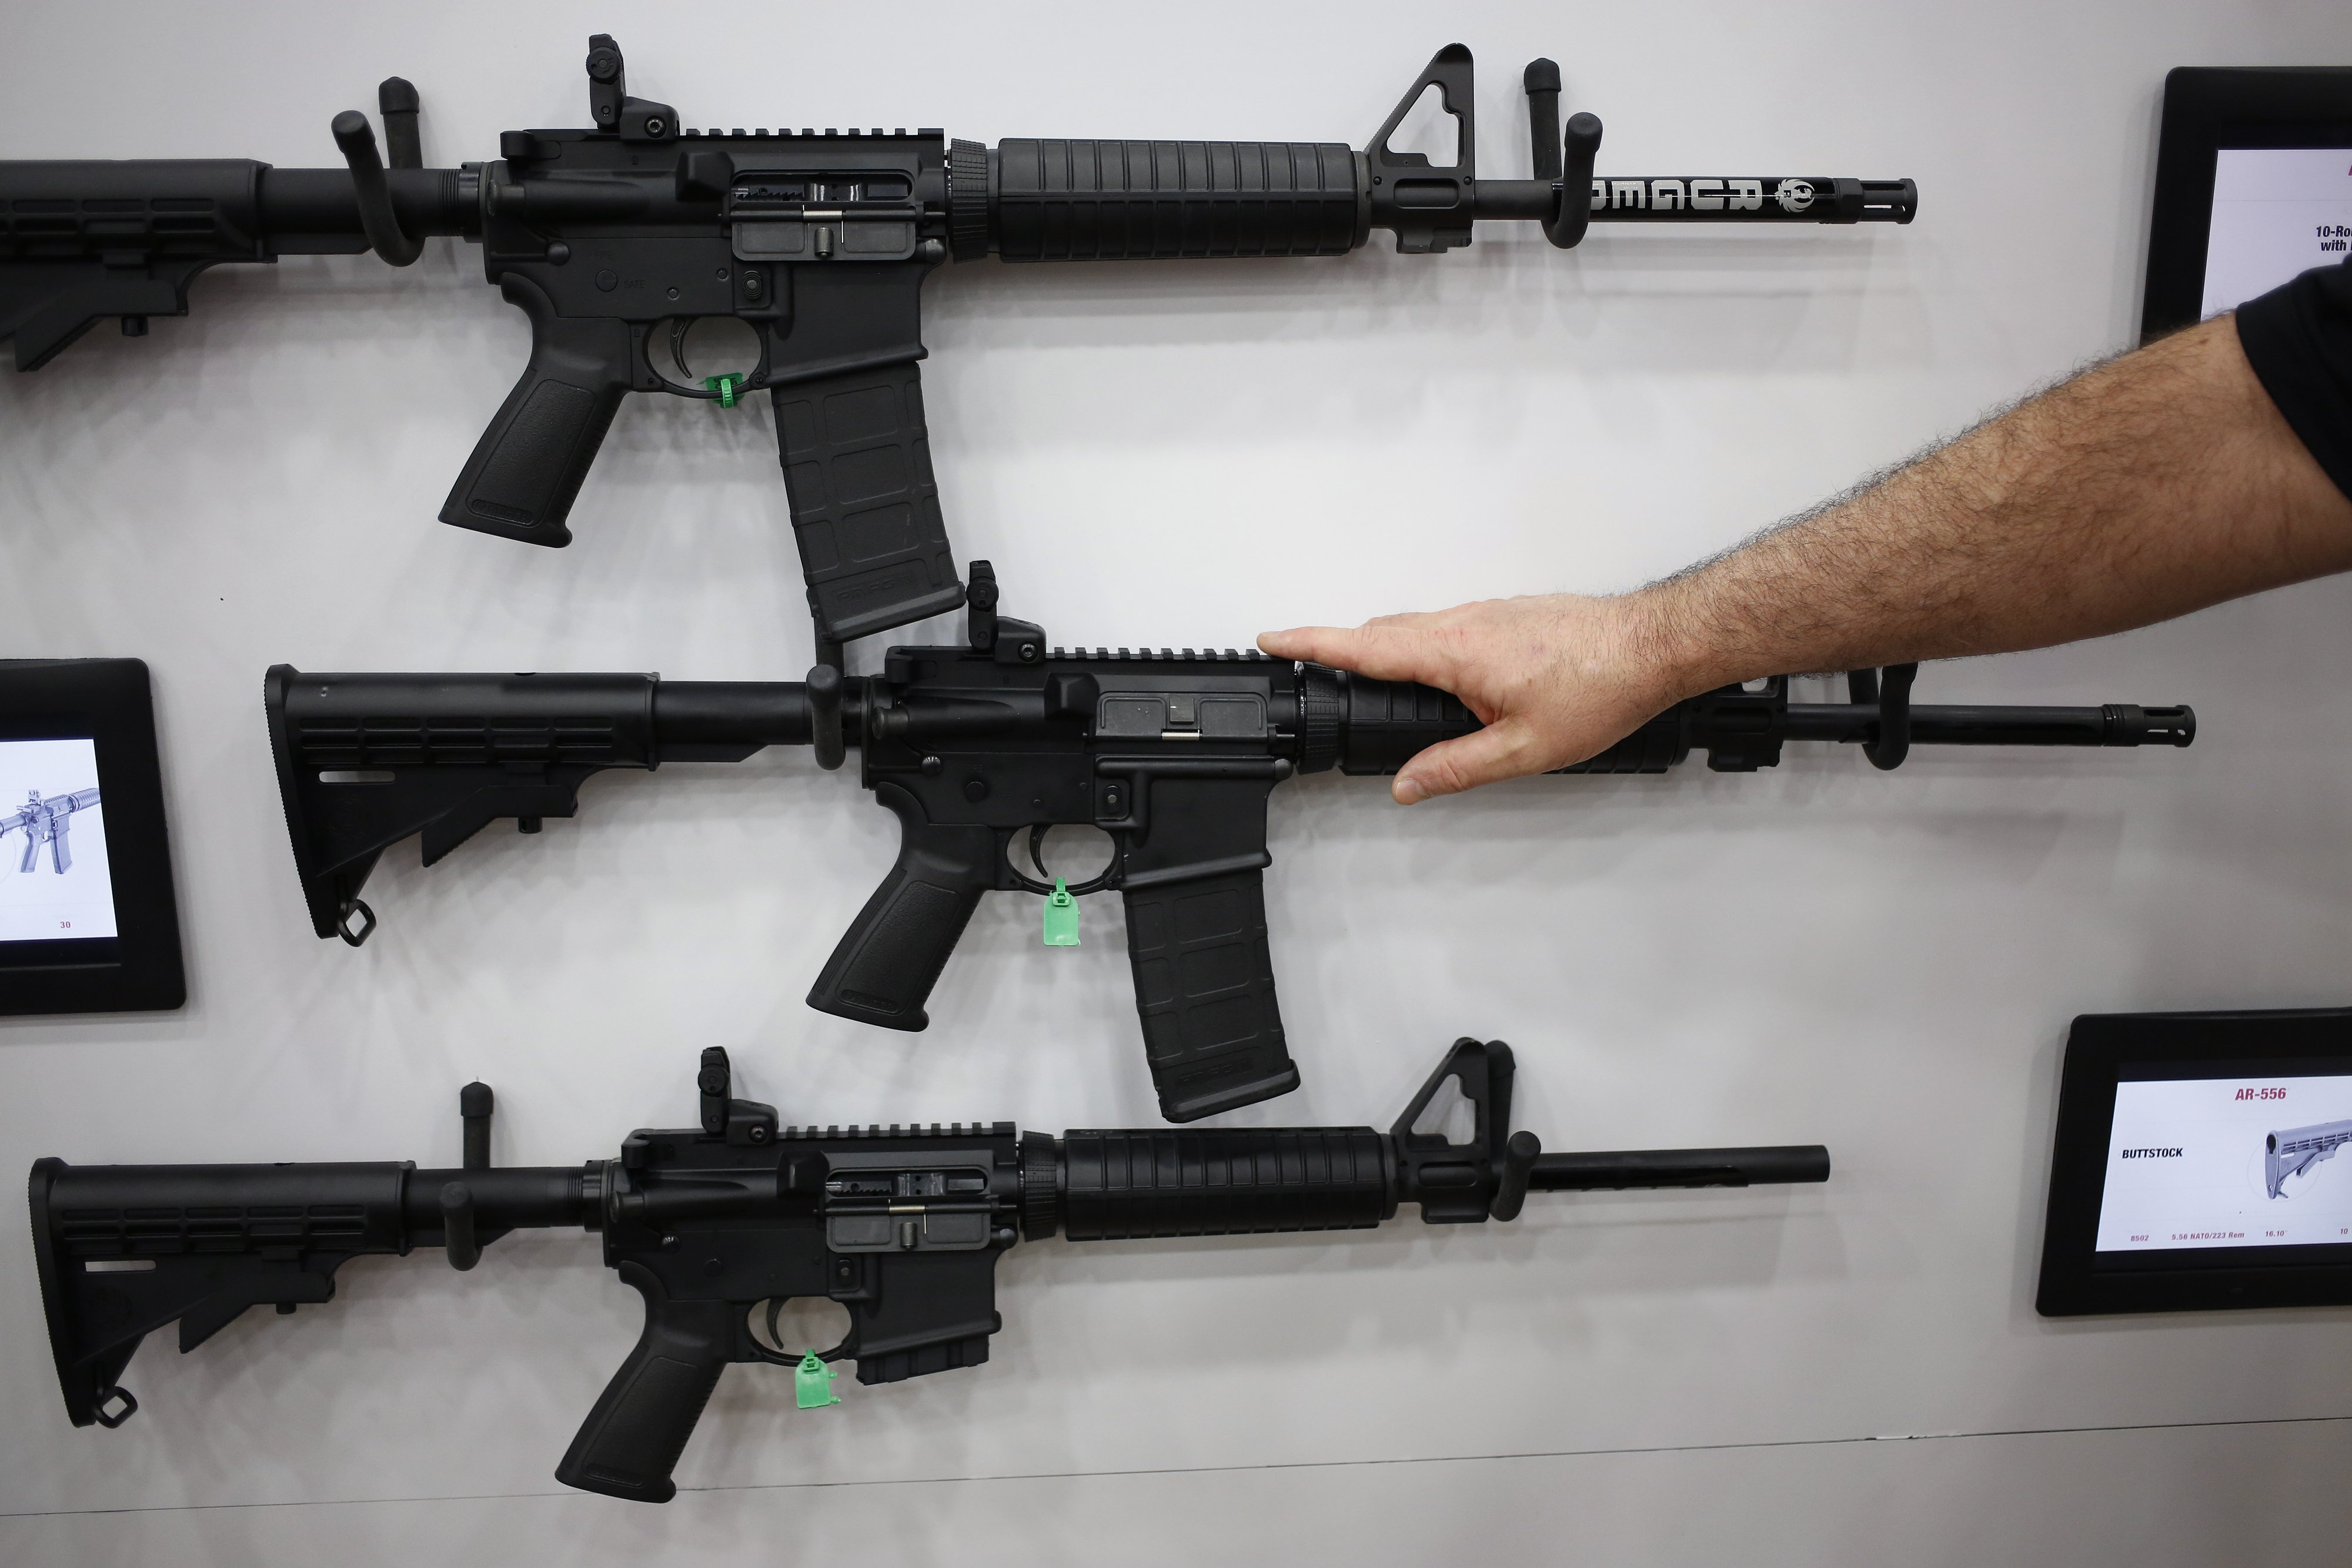 Illinois Bill Ordering Gun Owners to Turn in or Transfer Ownership of Assault Rifles Passes State House